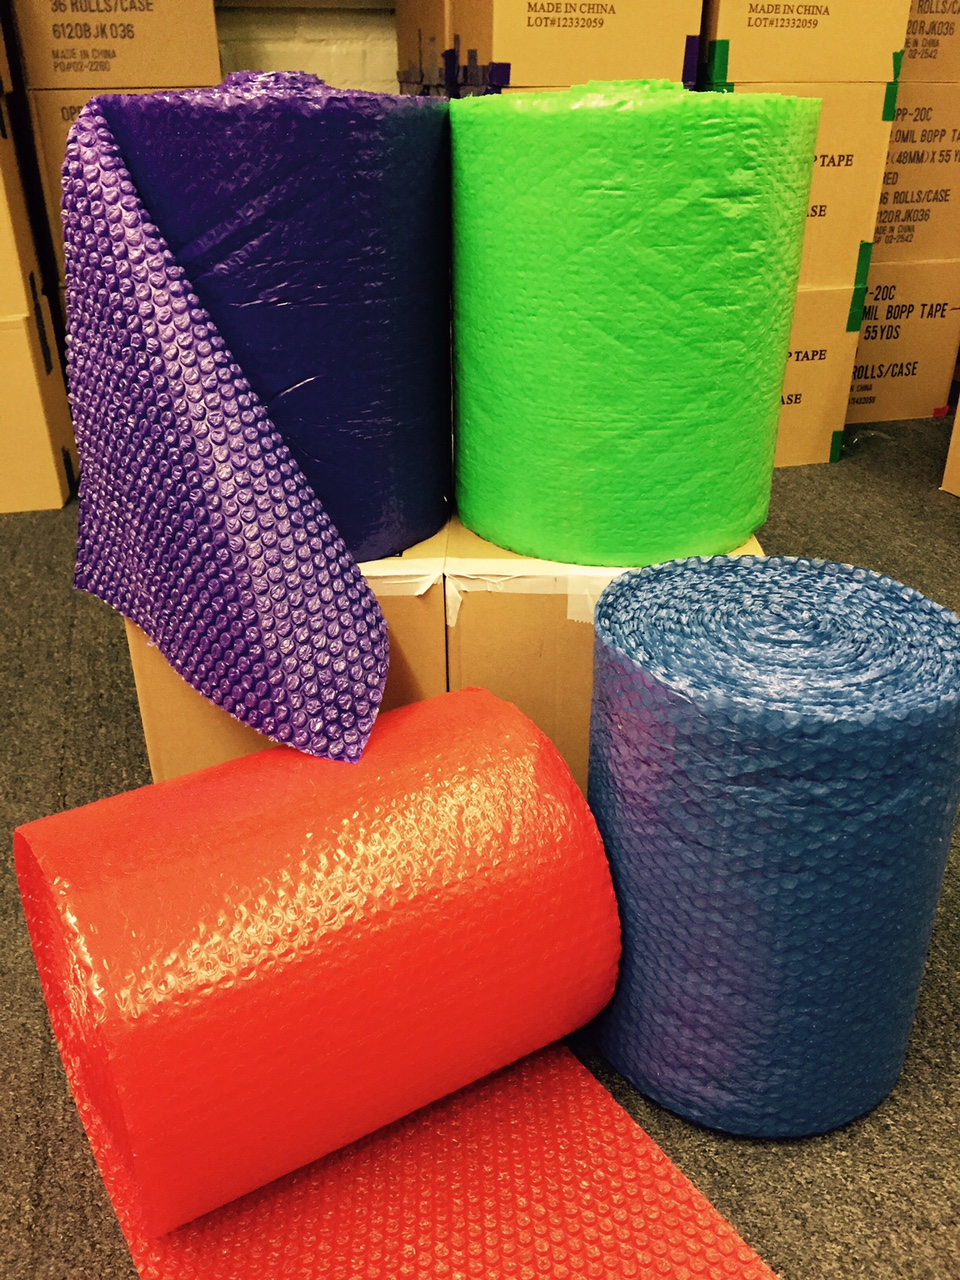 Bubble Wrap Rolls Blue Bubble Wrap Red Bubble Wrap Green Bubble Wrap Purple Bubble Wrap